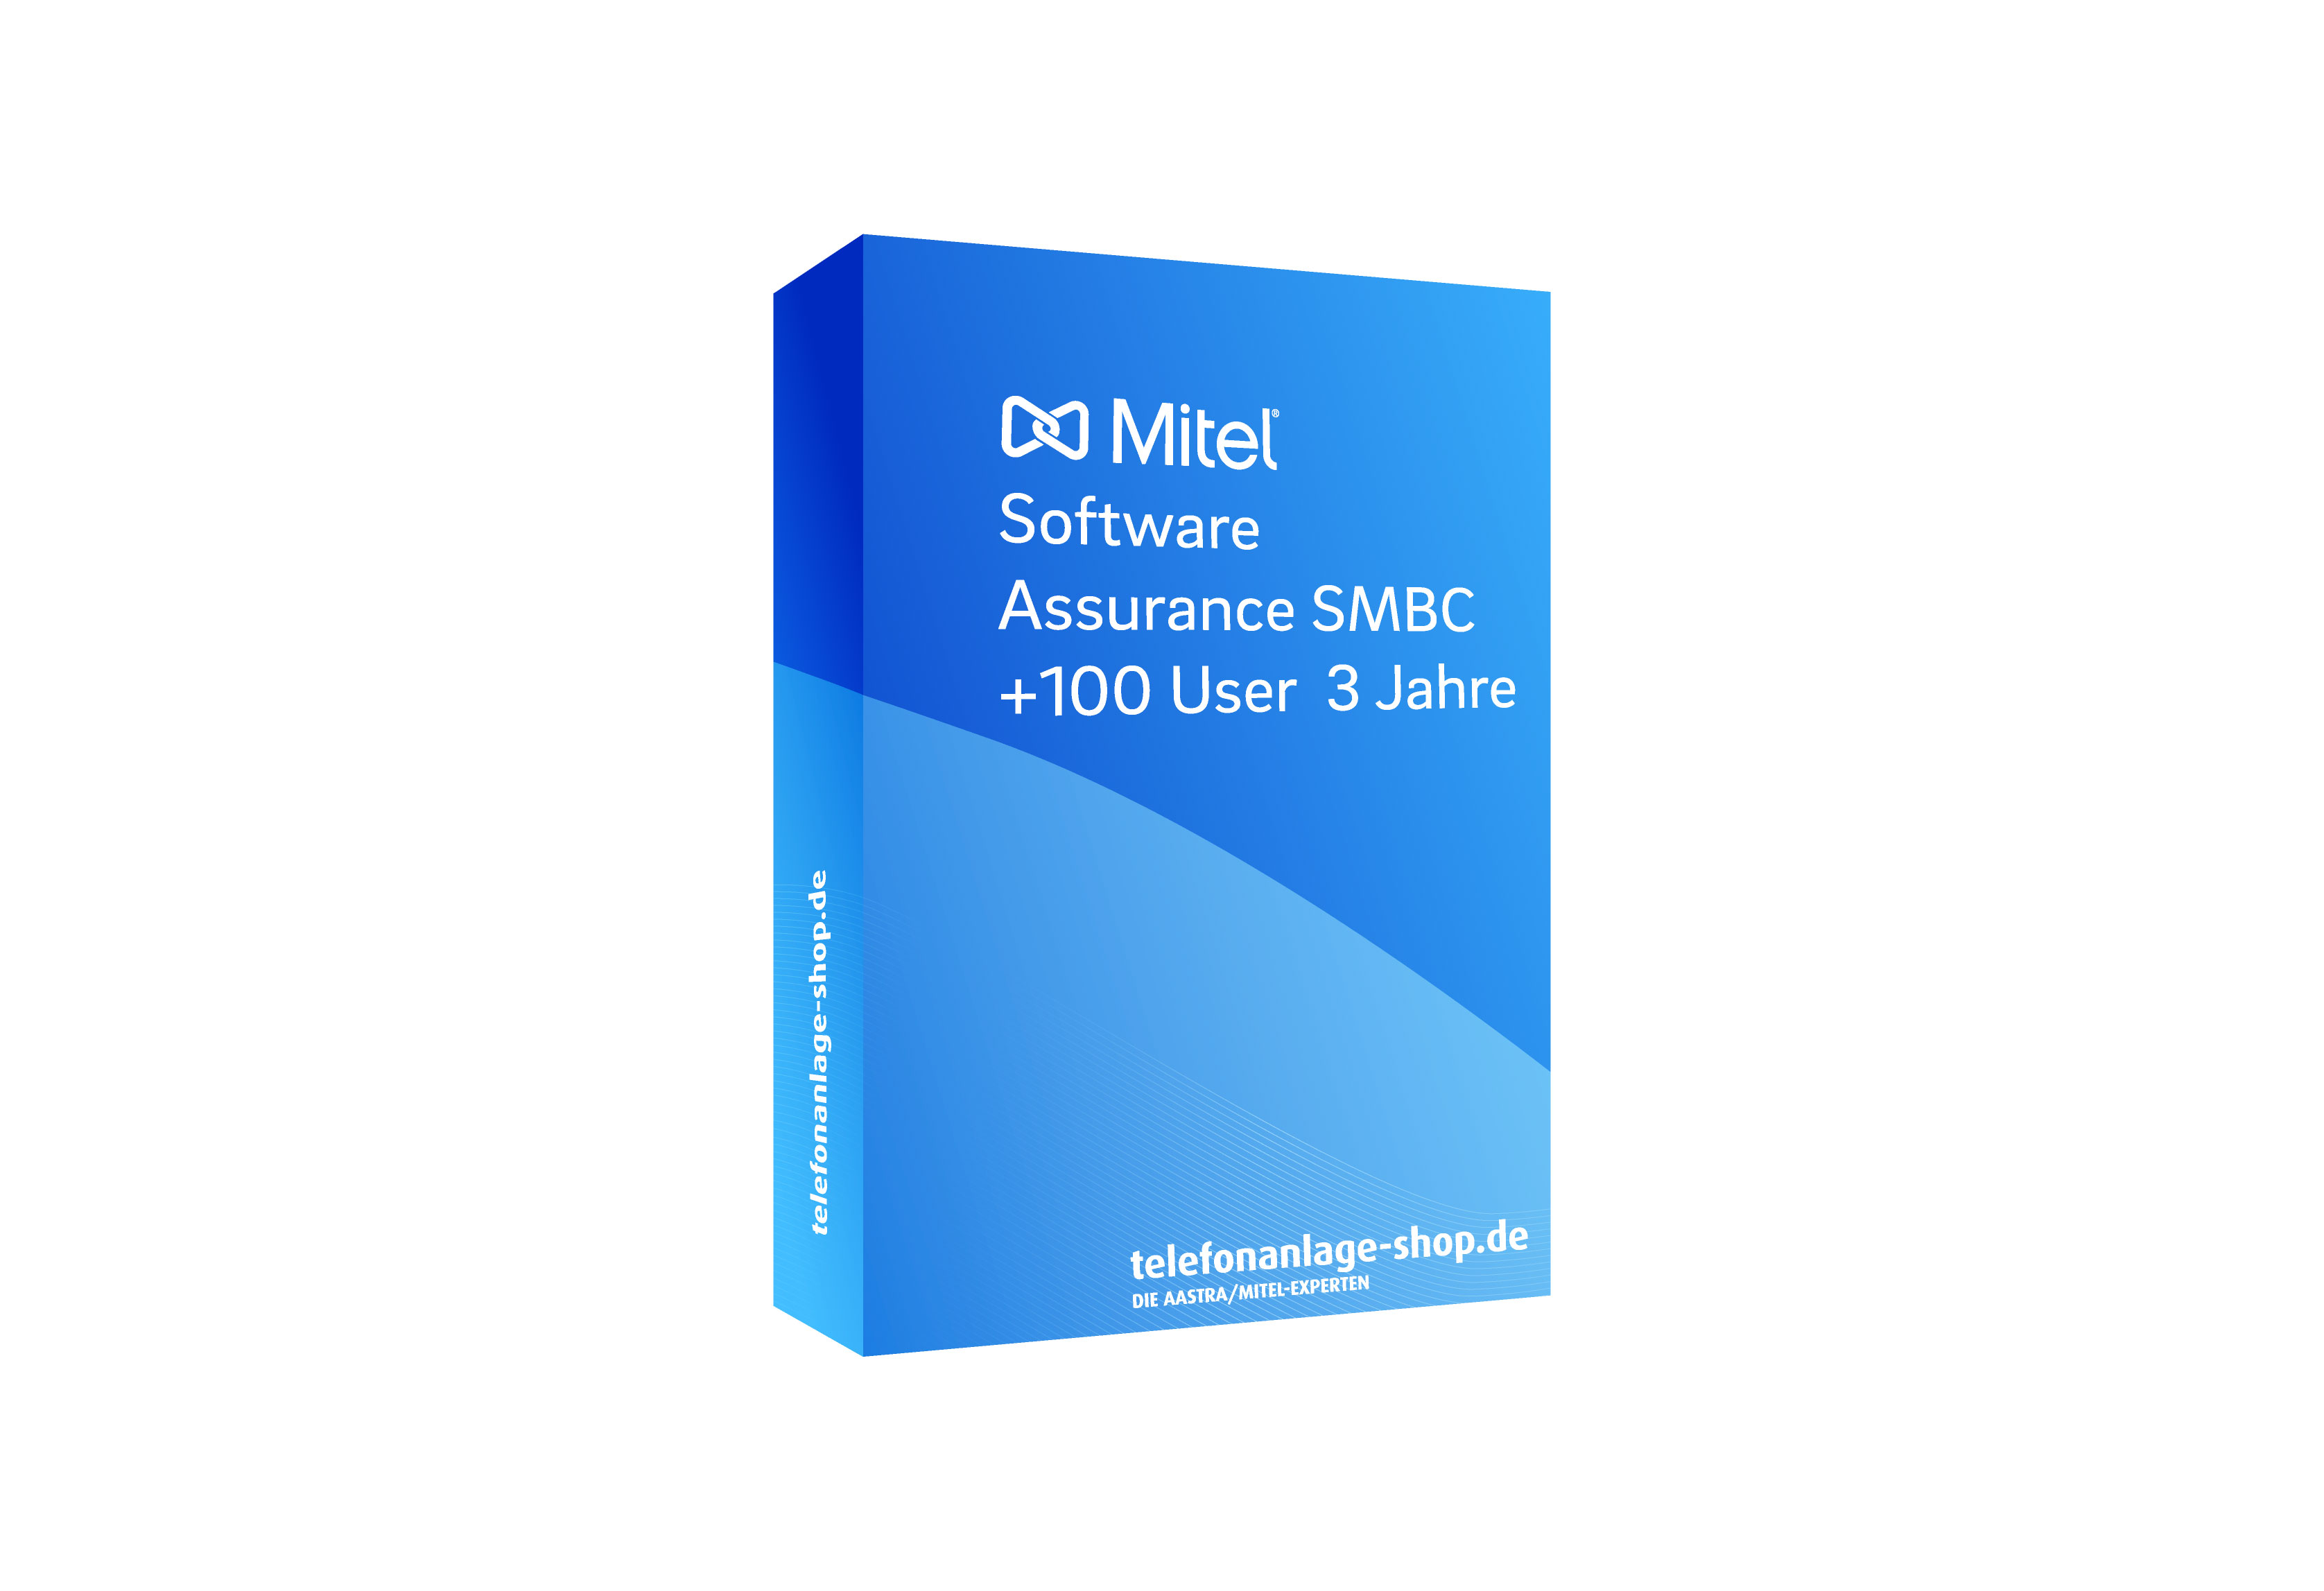 Vollansicht - Mitel Software Assurance SMBC +100 User 3Jahre